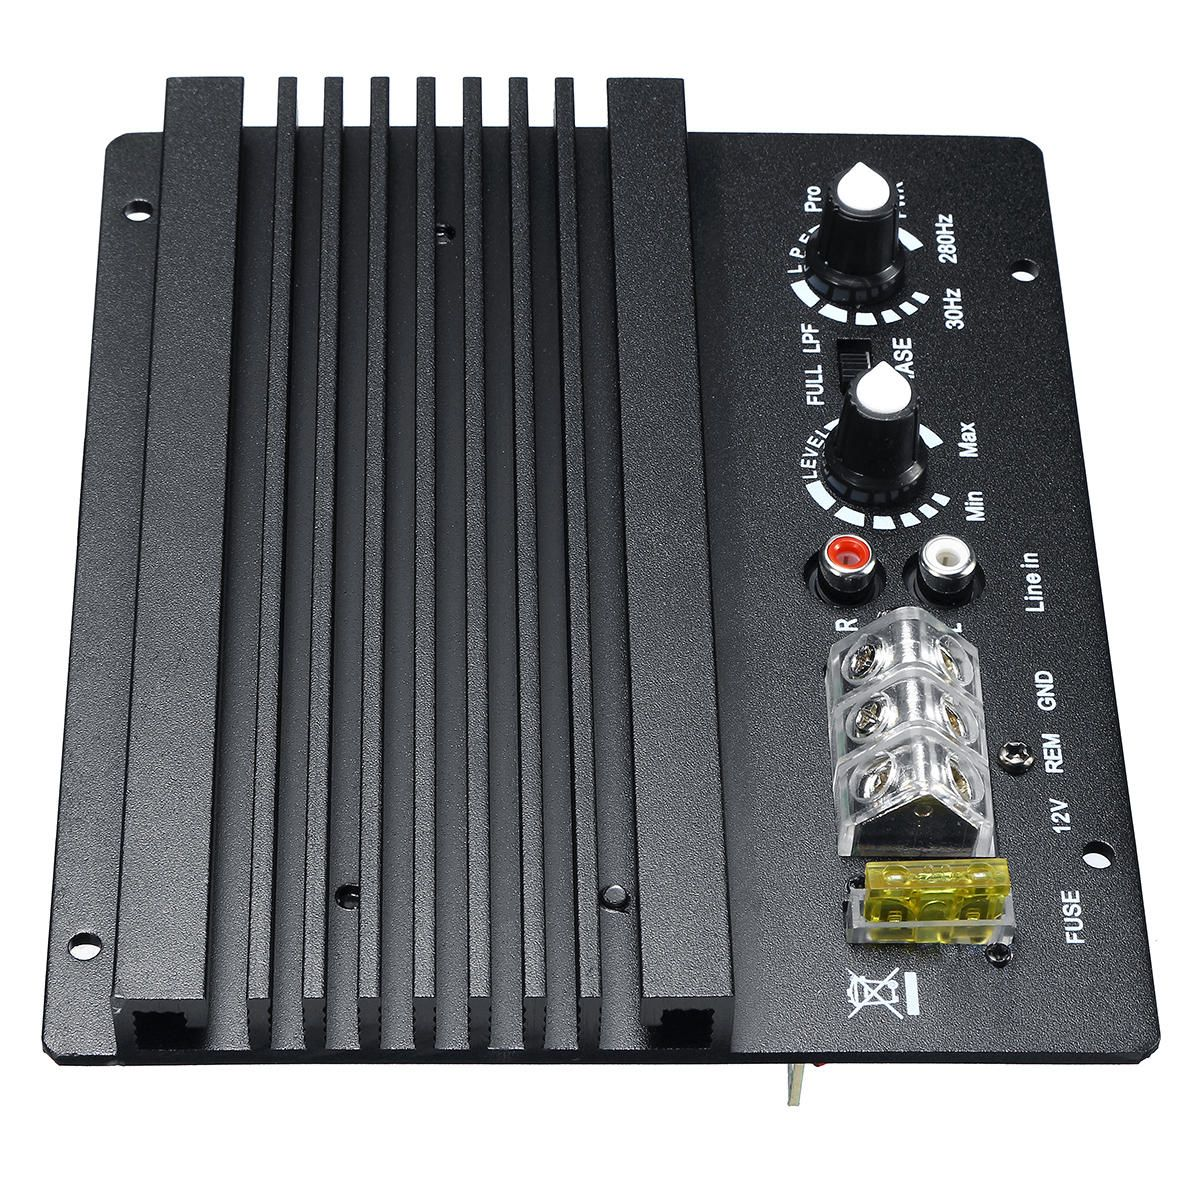 OCL US$28.99 Power Amplifier Board Powerful Bass Subwoofer Amp Amplify Module 12V 300W for Car Audio Stereo